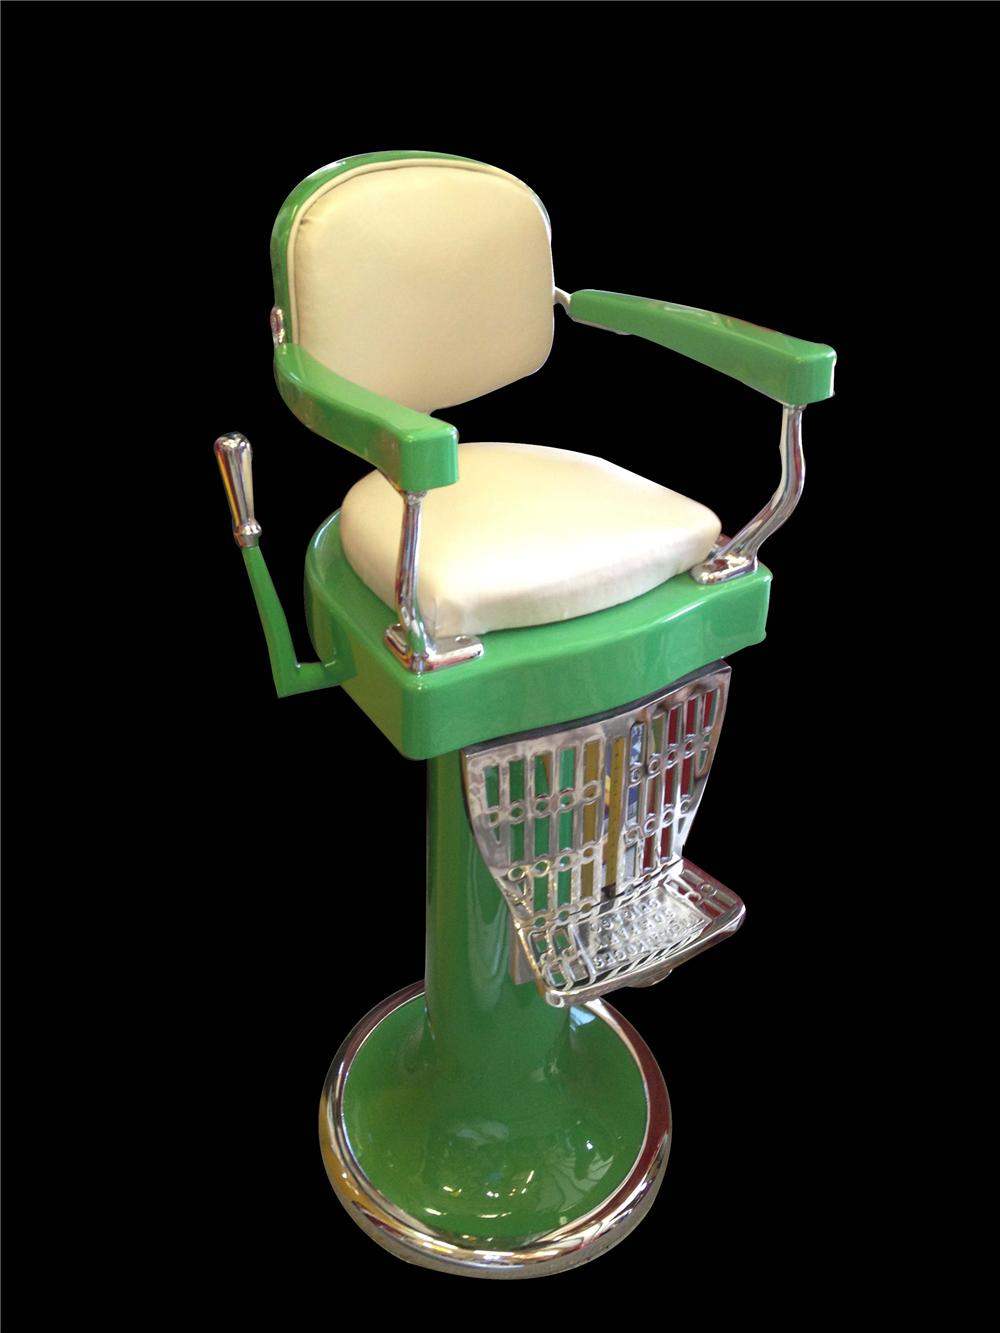 Incredible 1930s porcelain finished Barber shop Childs barber chair by Koken. - Front 3/4 - 130766